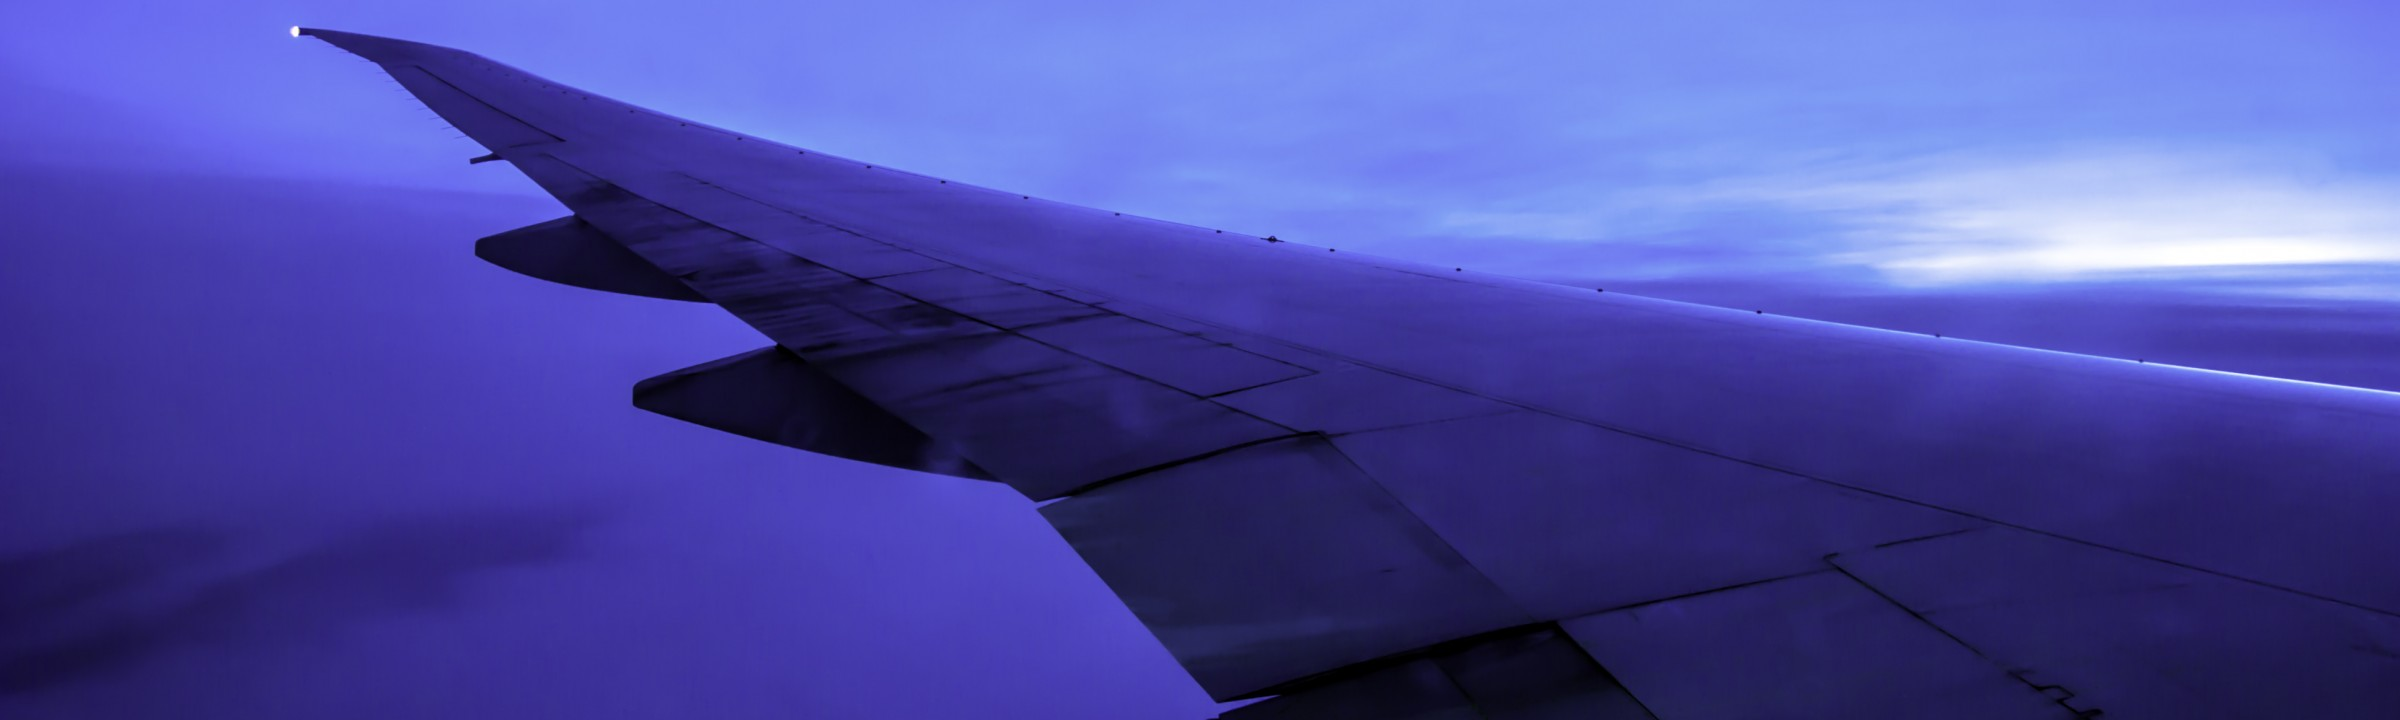 cropped-header-airplane-wing